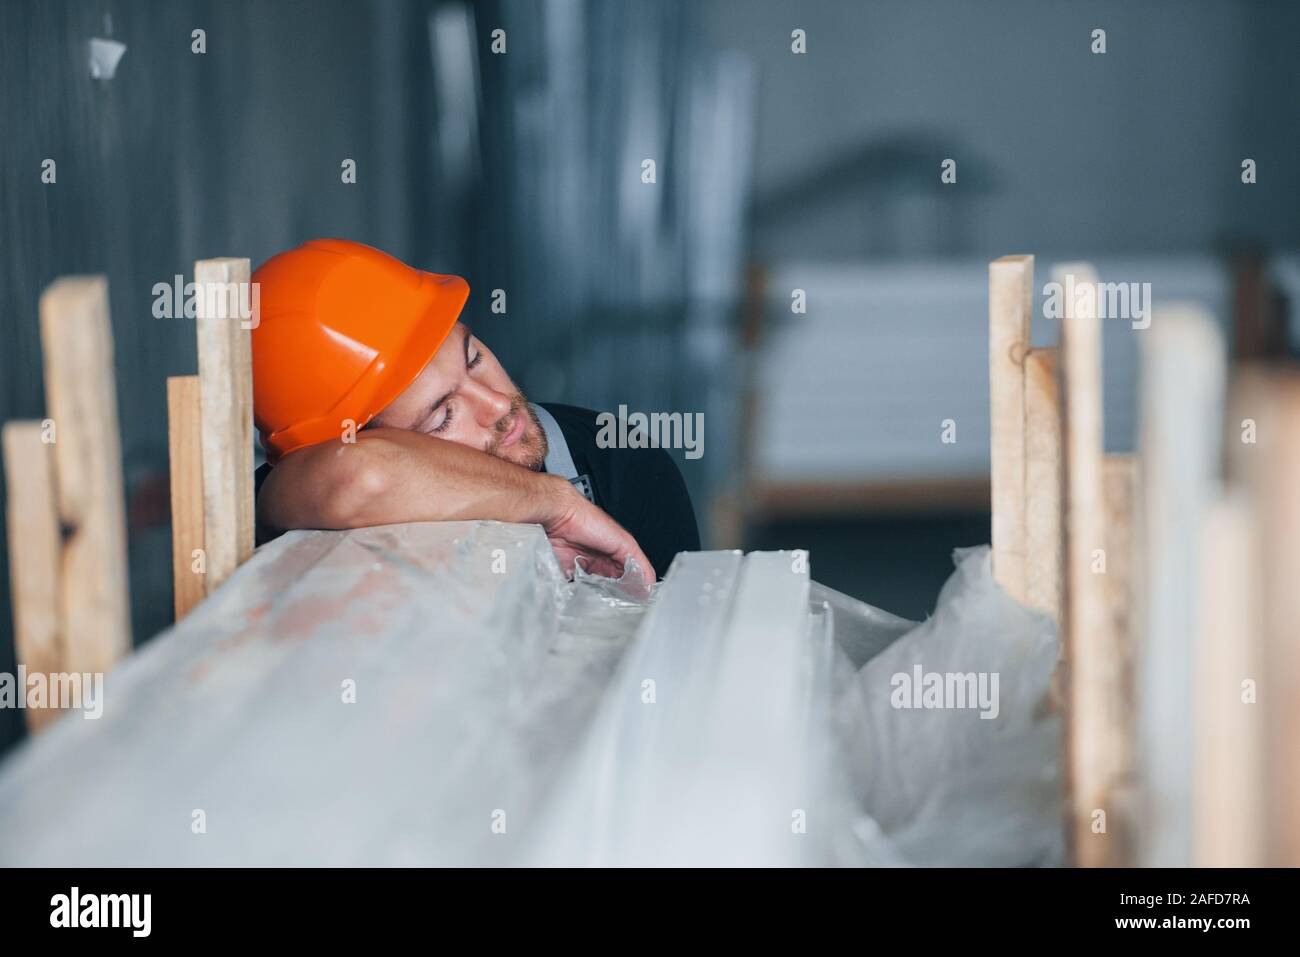 Sleeping on a job. Taking a break. Industrial worker indoors in factory. Young technician with orange hard hat Stock Photo